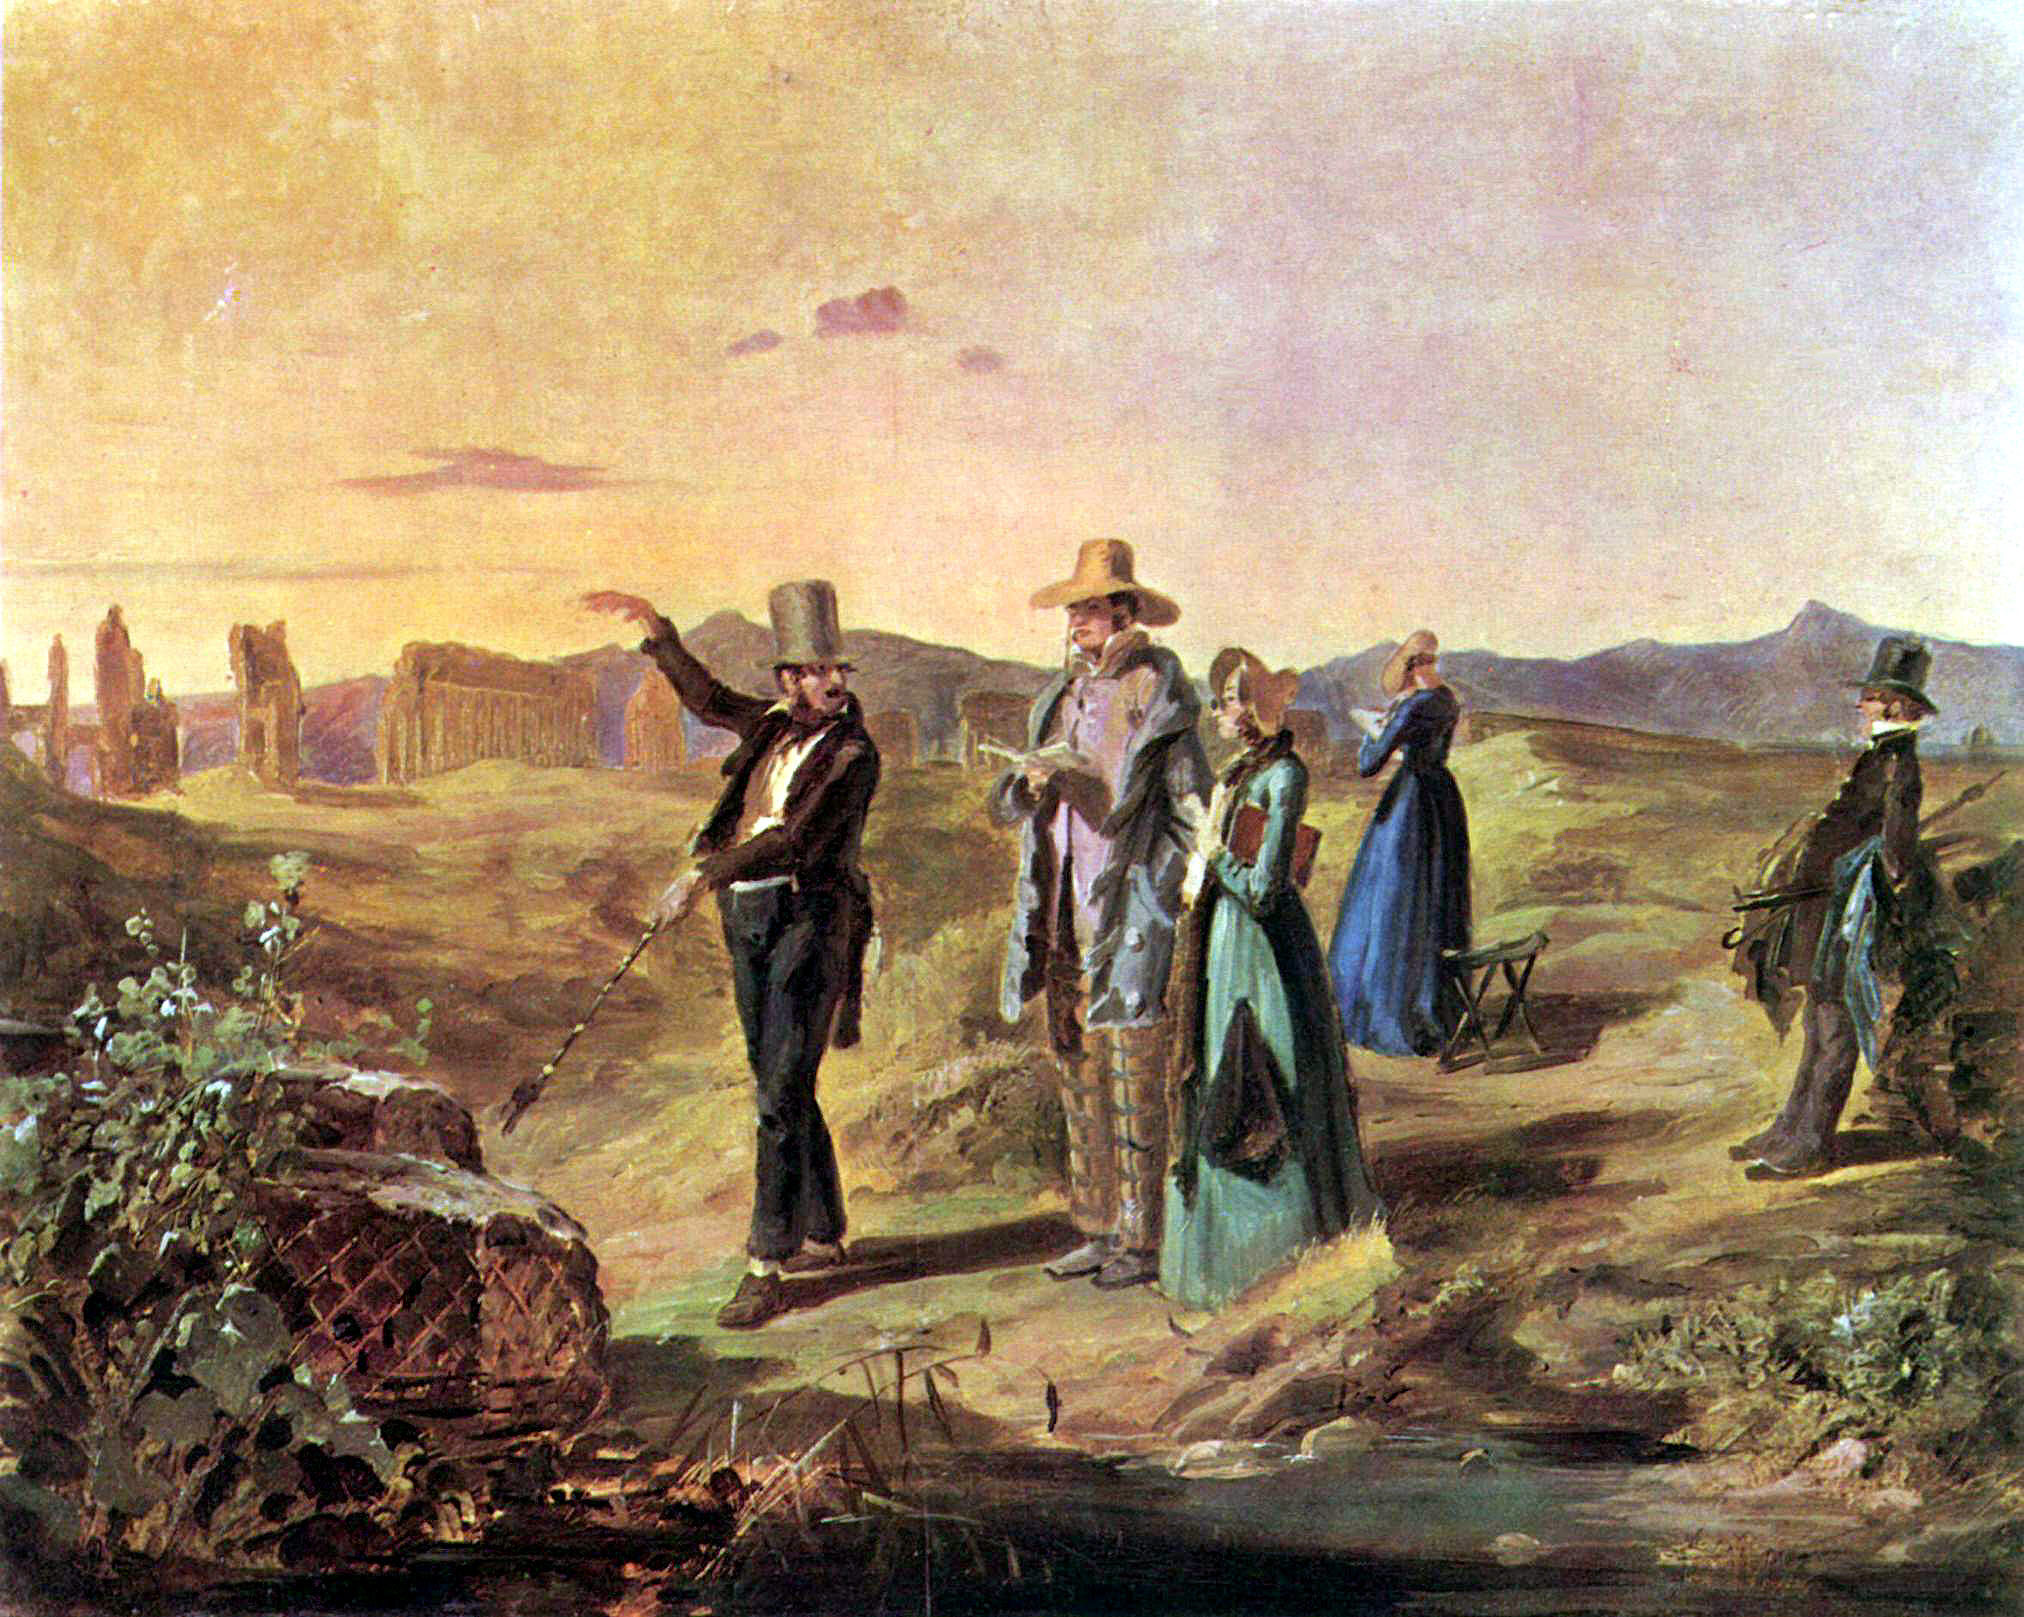 De Carl Spitzweg - The Yorck Project: 10.000 Meisterwerke der Malerei. DVD-ROM, 2002. ISBN 3936122202. Distributed by DIRECTMEDIA Publishing GmbH., Dominio público, https://commons.wikimedia.org/w/index.php?curid=159124